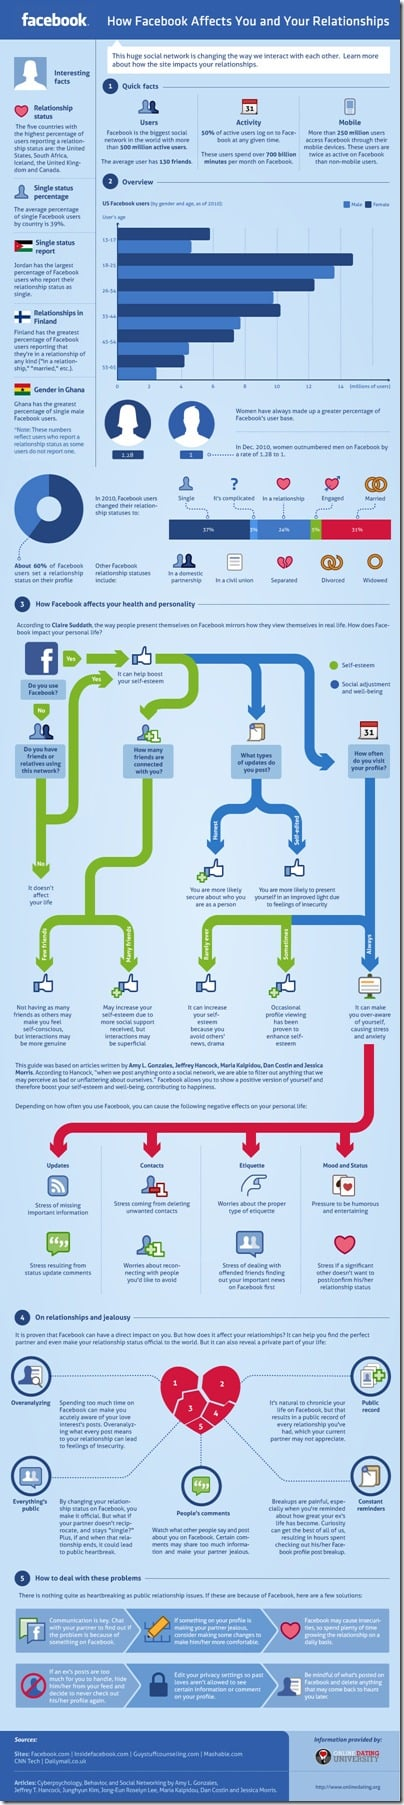 Infographic: Facebook and Relationships